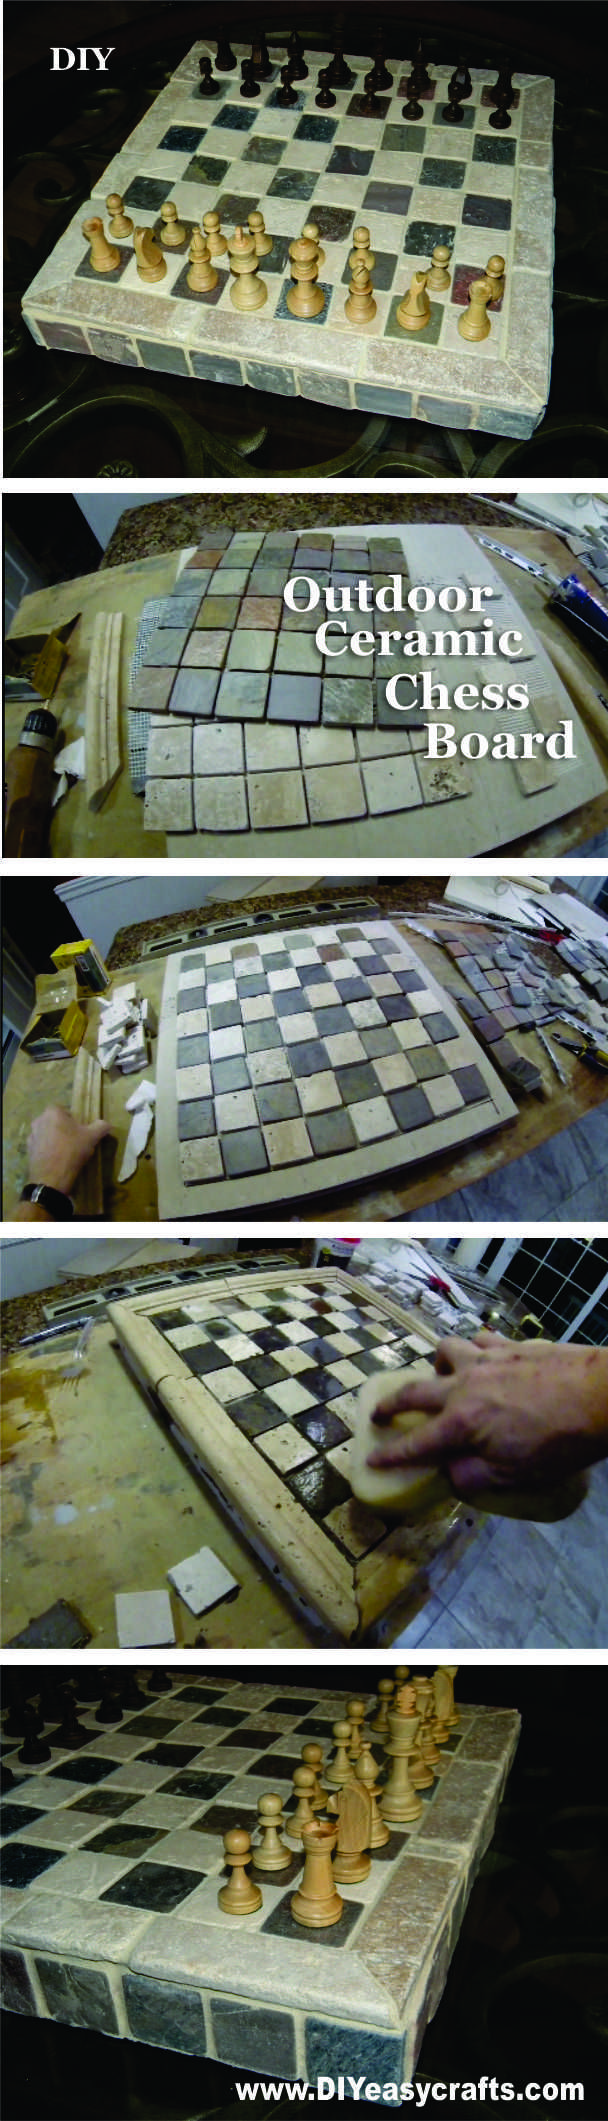 DIY Ceramic Tile Outdoor Chess Board. www.DIYeasycrafts.com                                                                                                                                                     More